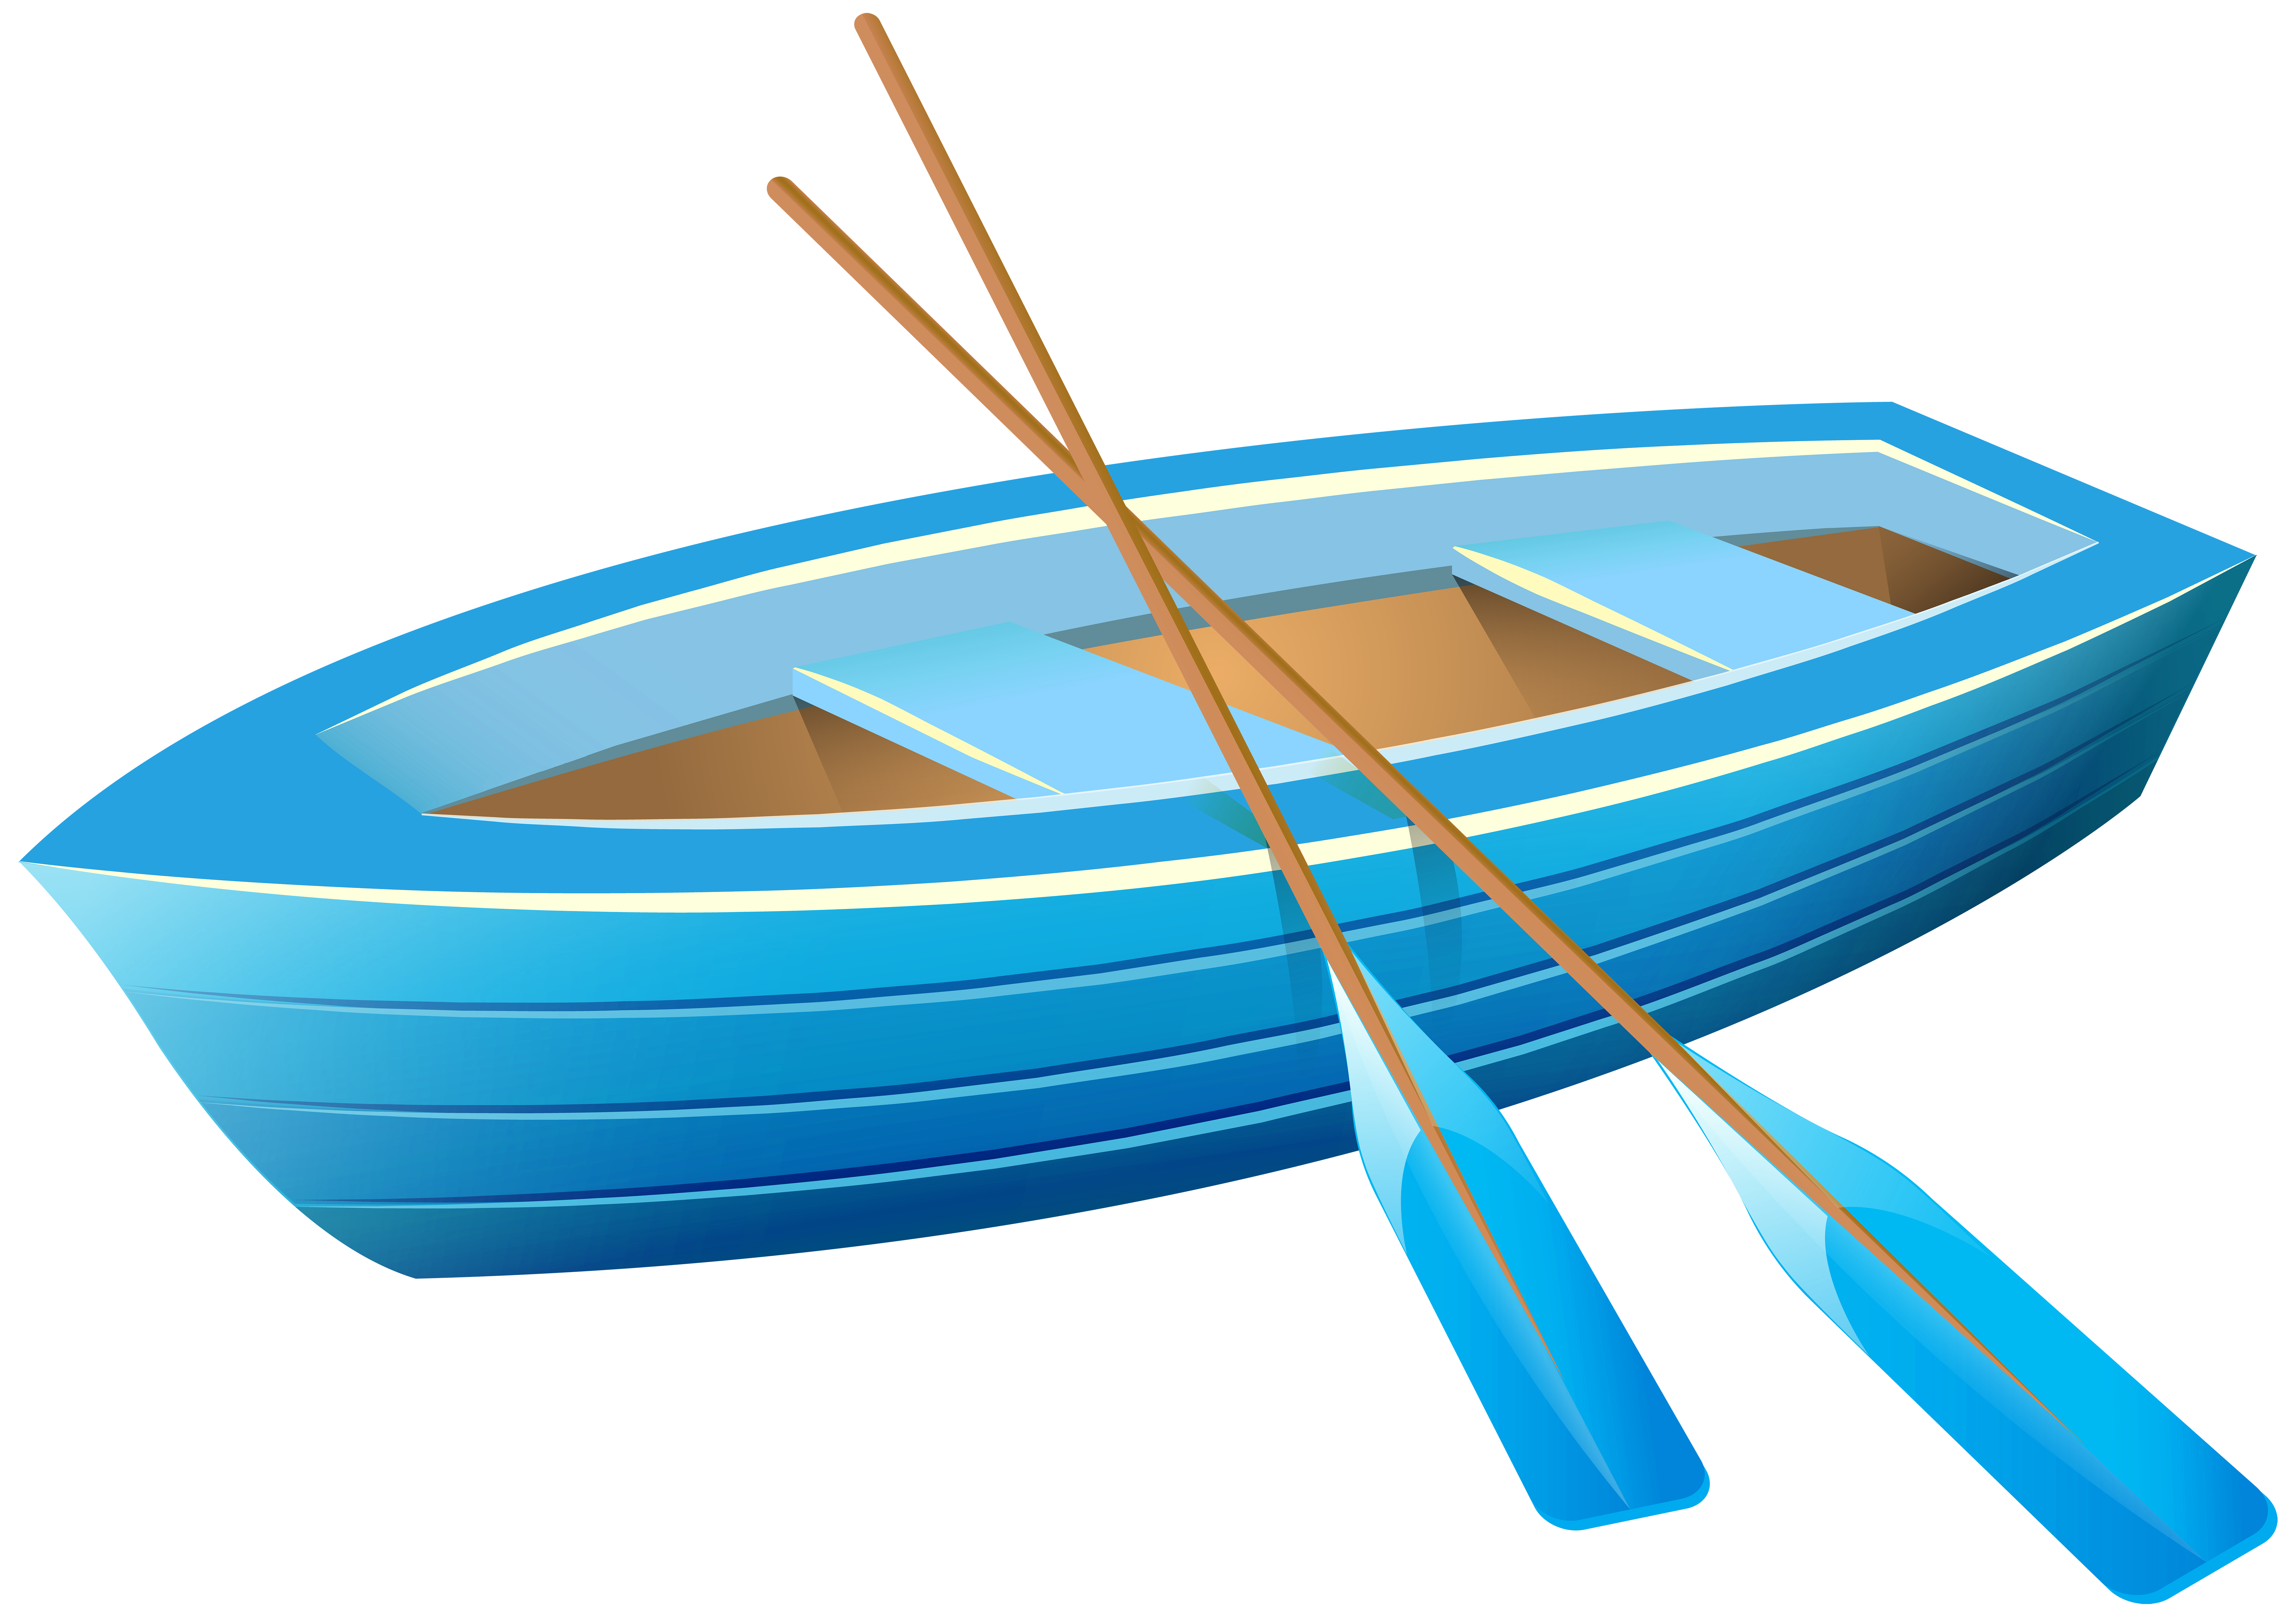 Boat clipart images svg library library Free Boat Clipart | Free download best Free Boat Clipart on ... svg library library